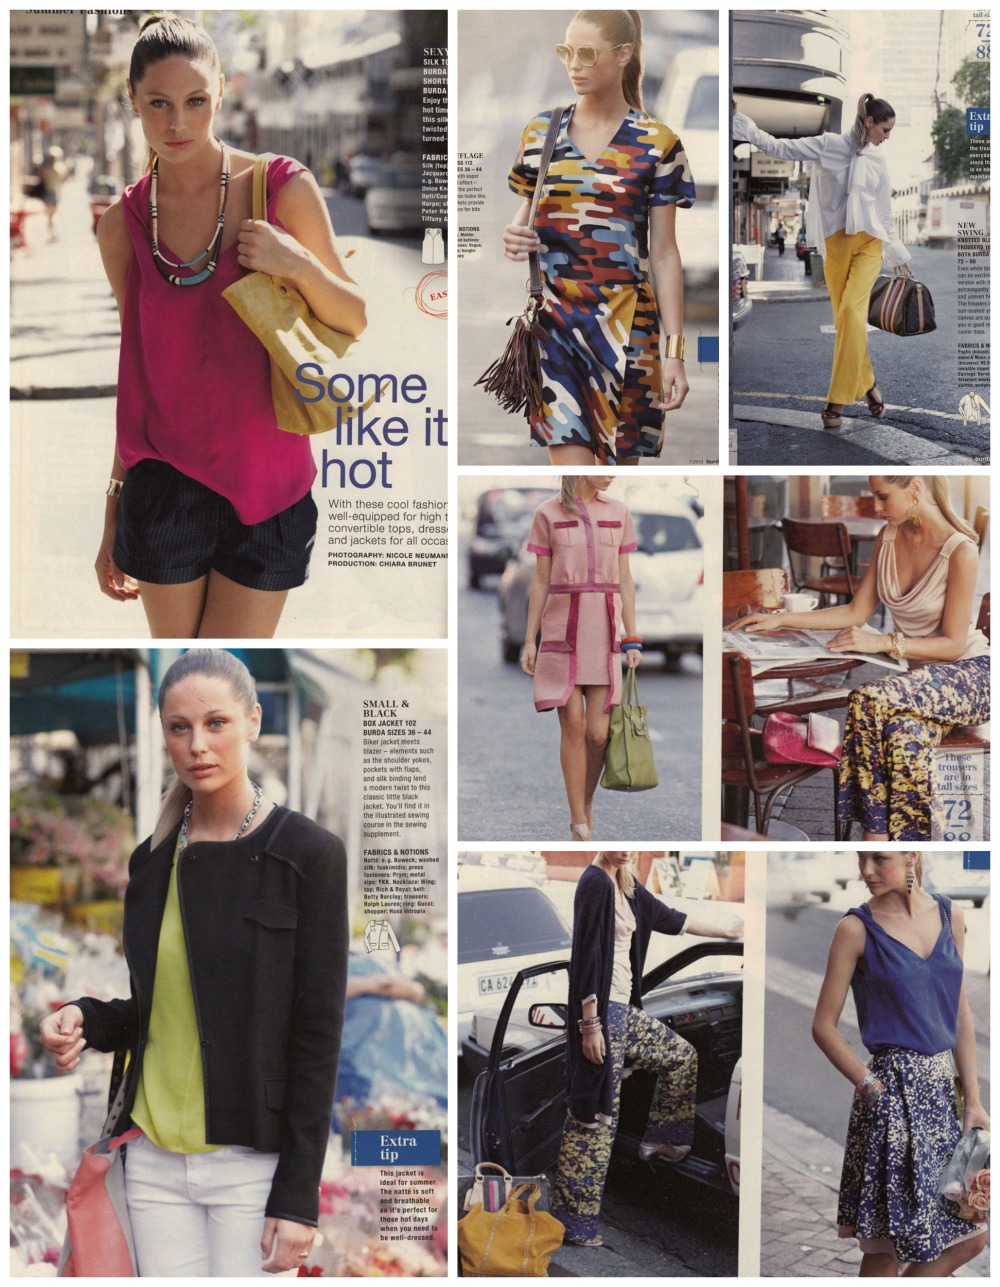 Burda July 2013 summer fashions